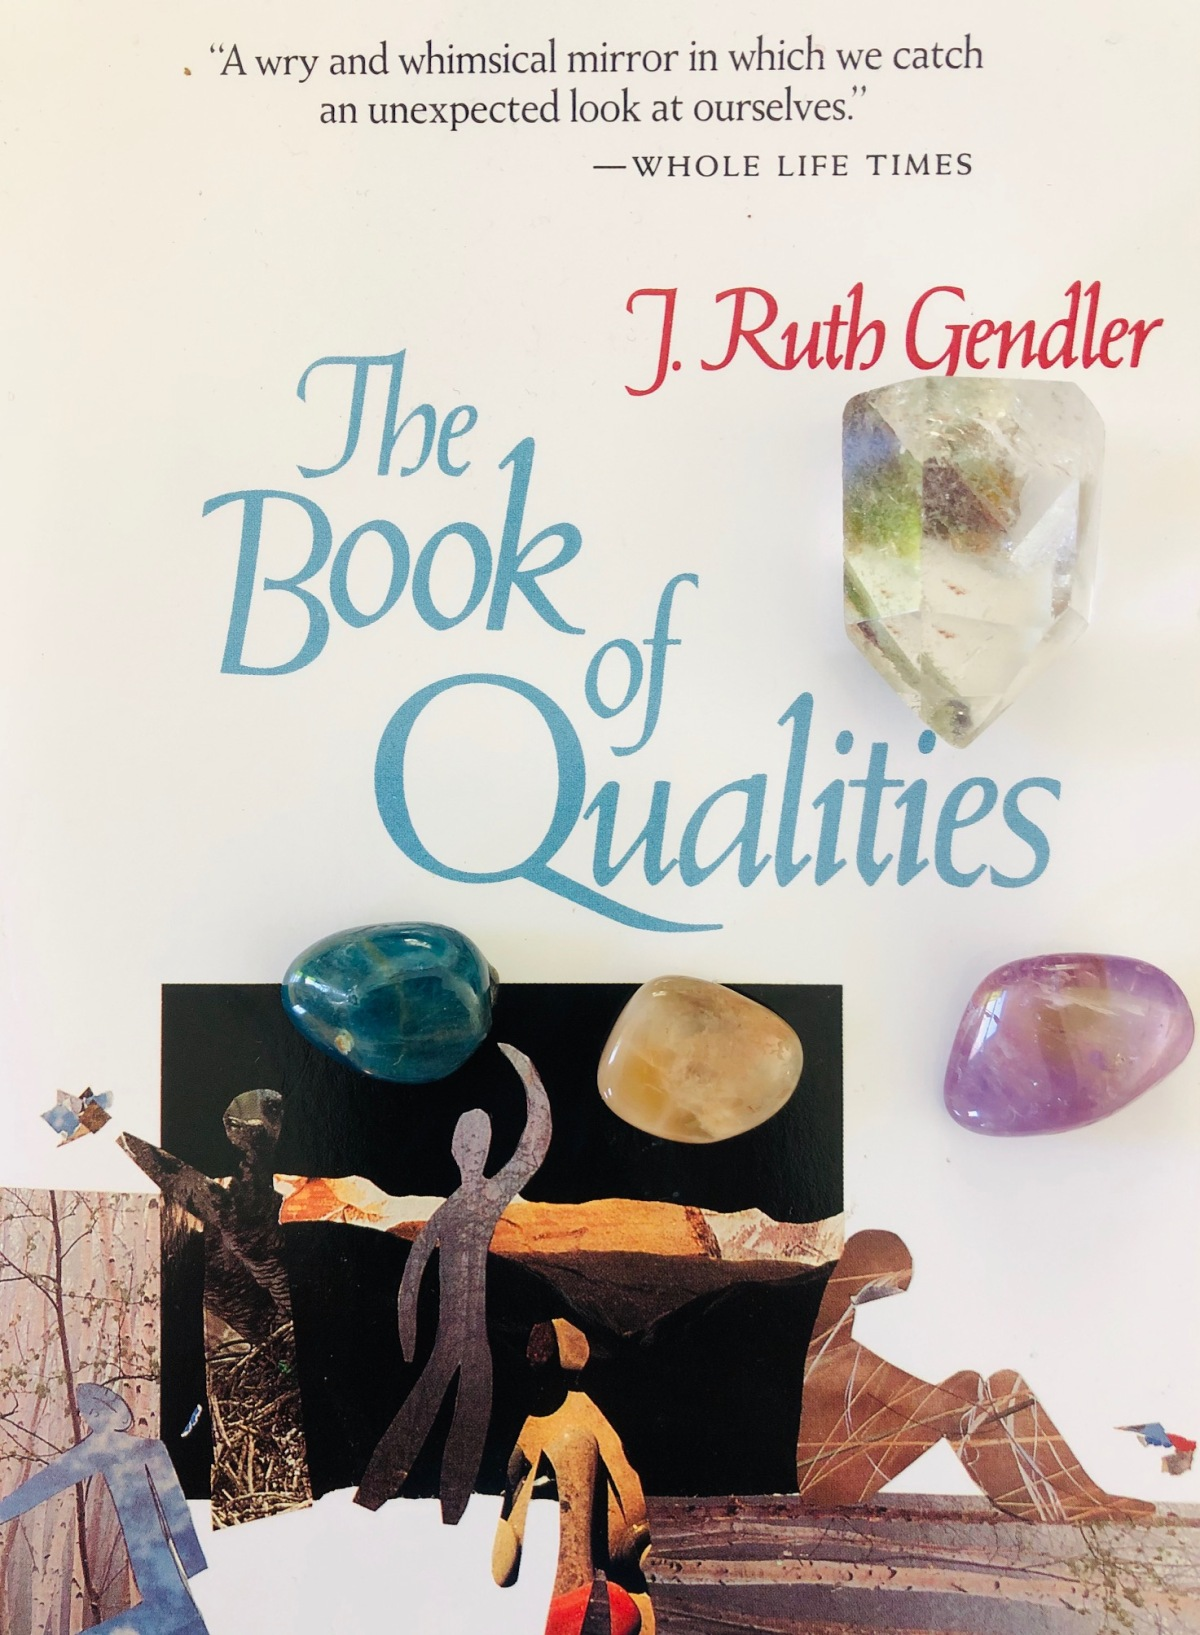 The Nitty Gritty: A Remotely Intellectual Review of The Book of Qualities